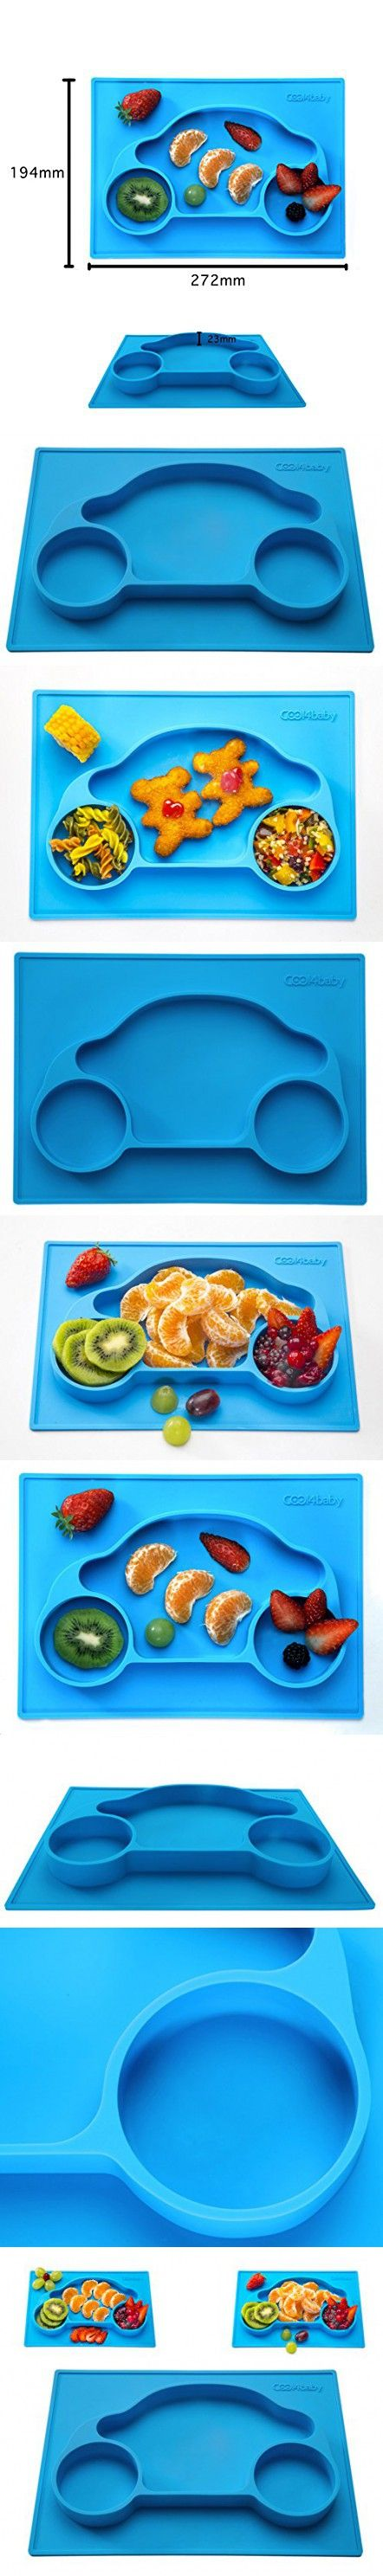 Mini Silicone Placemat for Kids On To Go Plate Car Baby Feeding Mat Toddlers Children Suction Plate (Blue) Fits Most High Chair for Table – - FREE BONUS